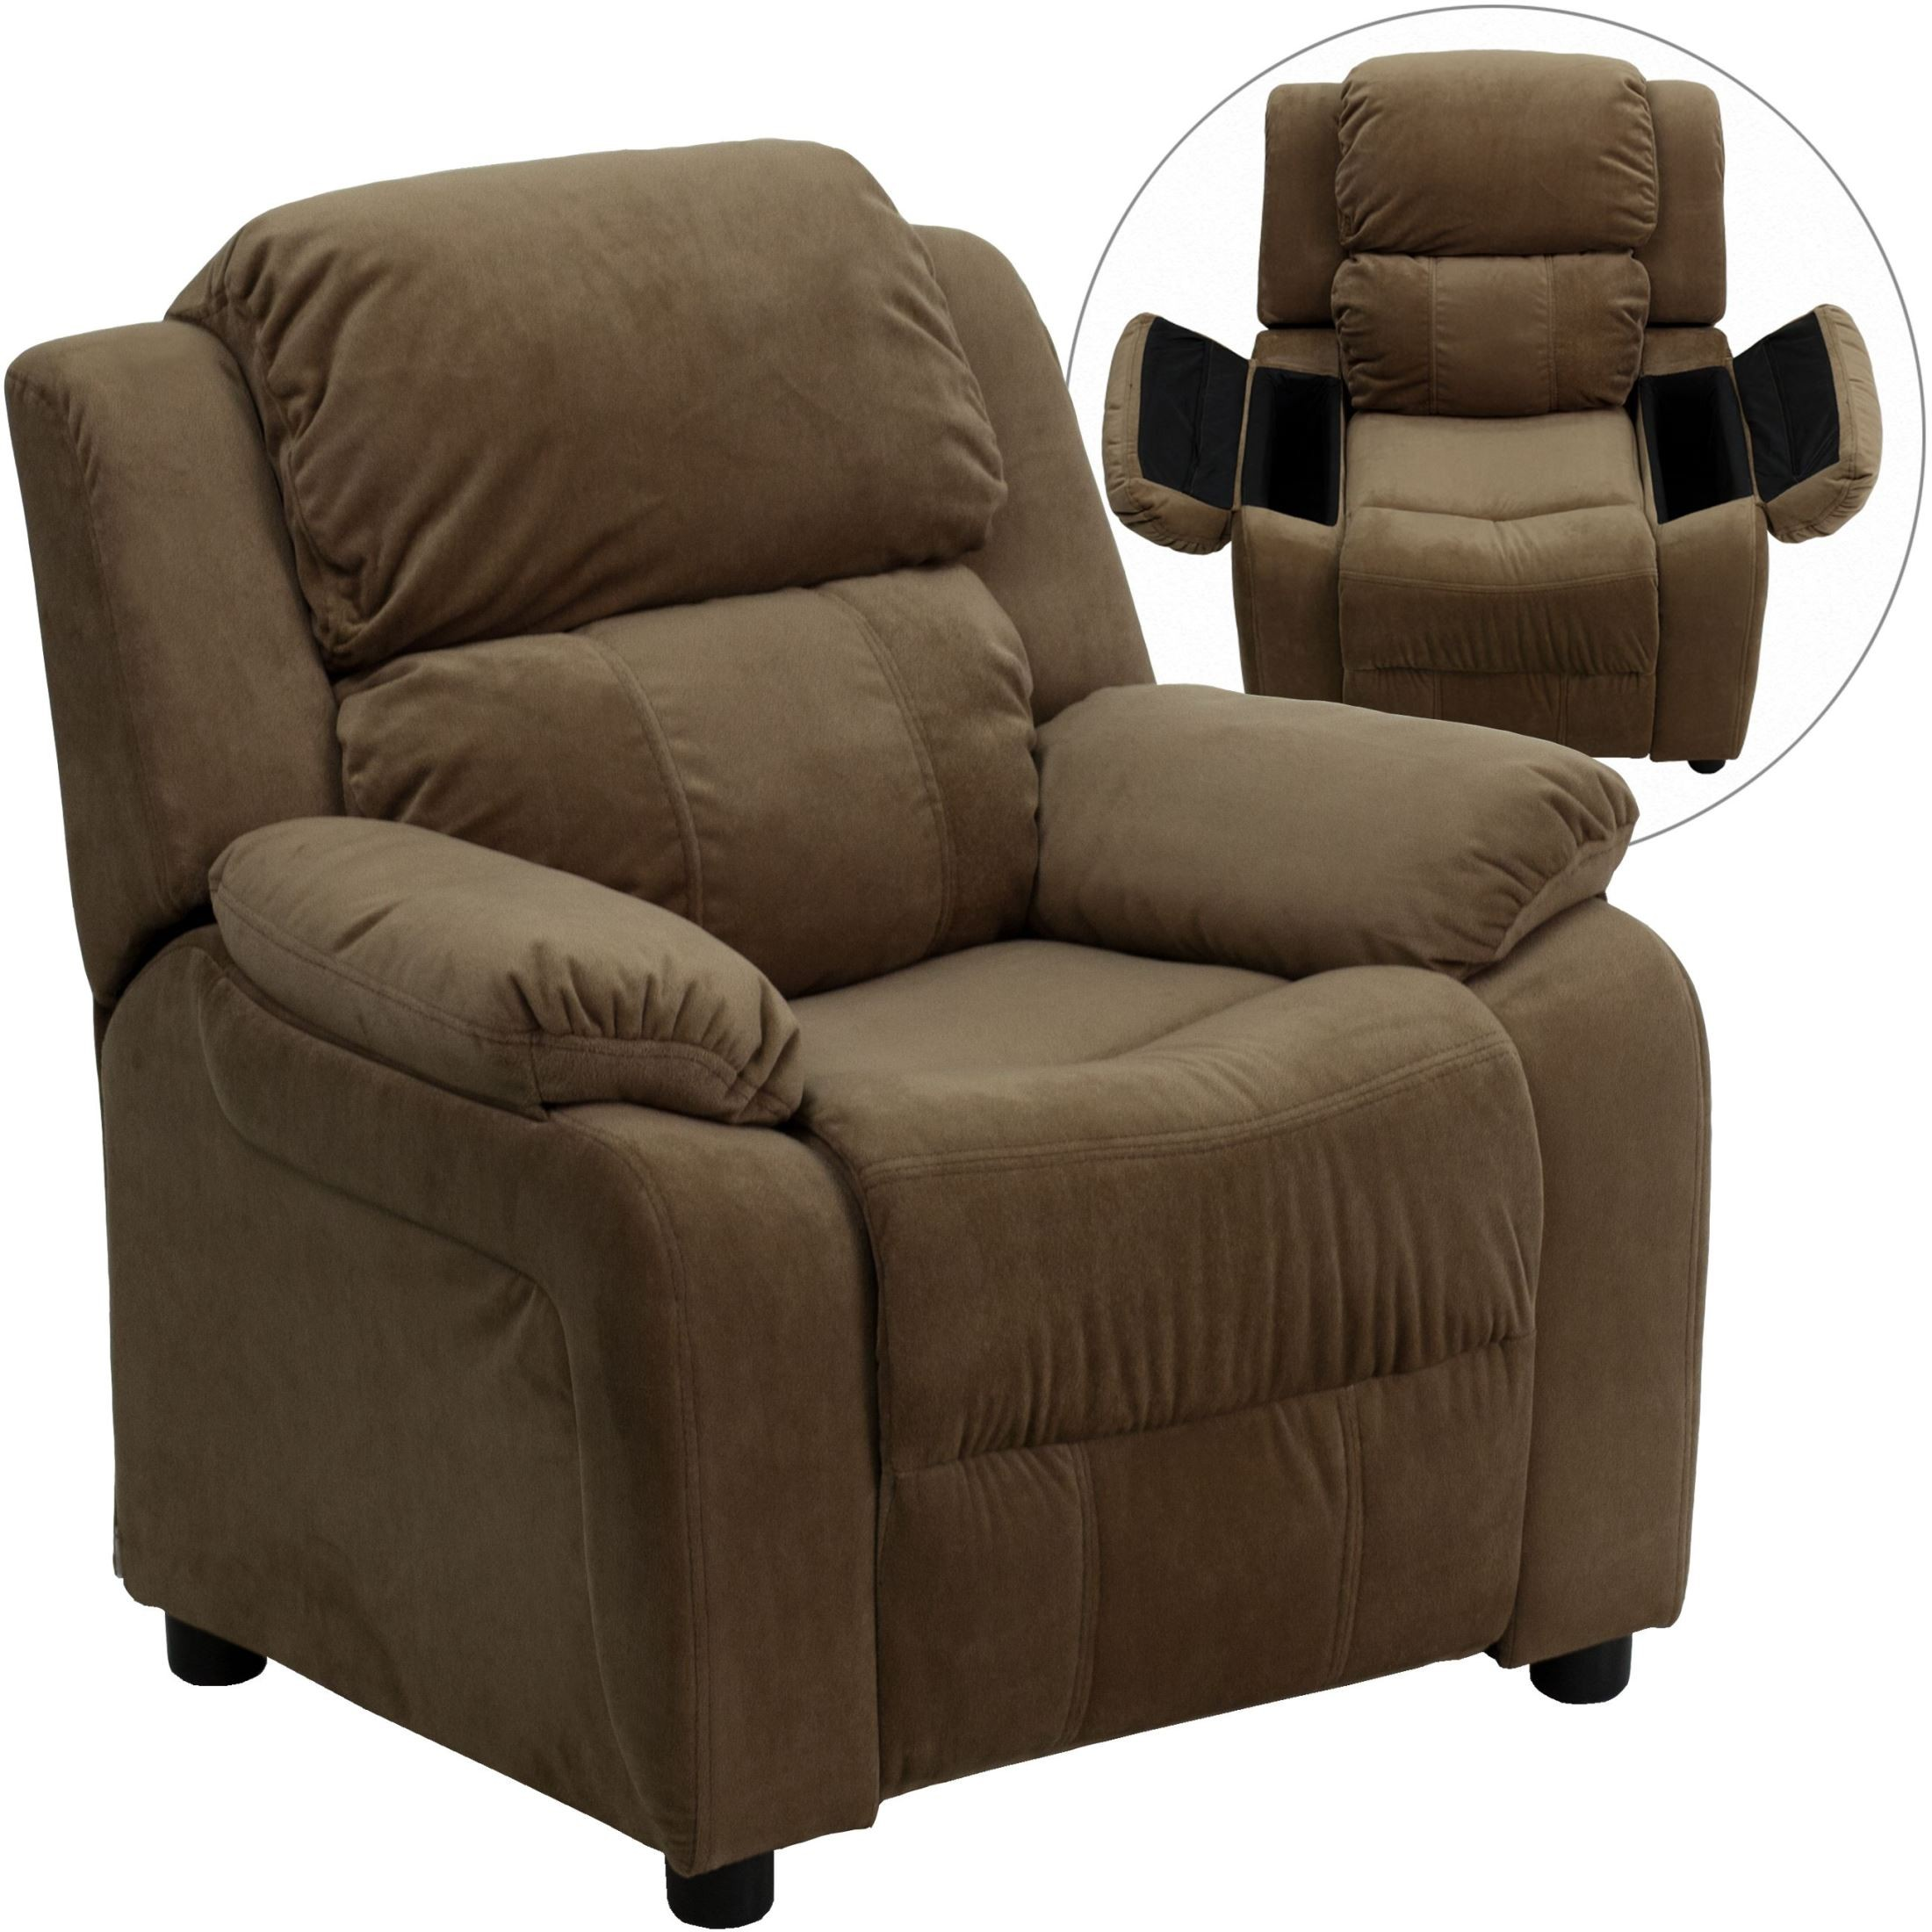 Children's Lounge Chair Deluxe Heavily Padded Brown Kids Storage Arm Recliner From